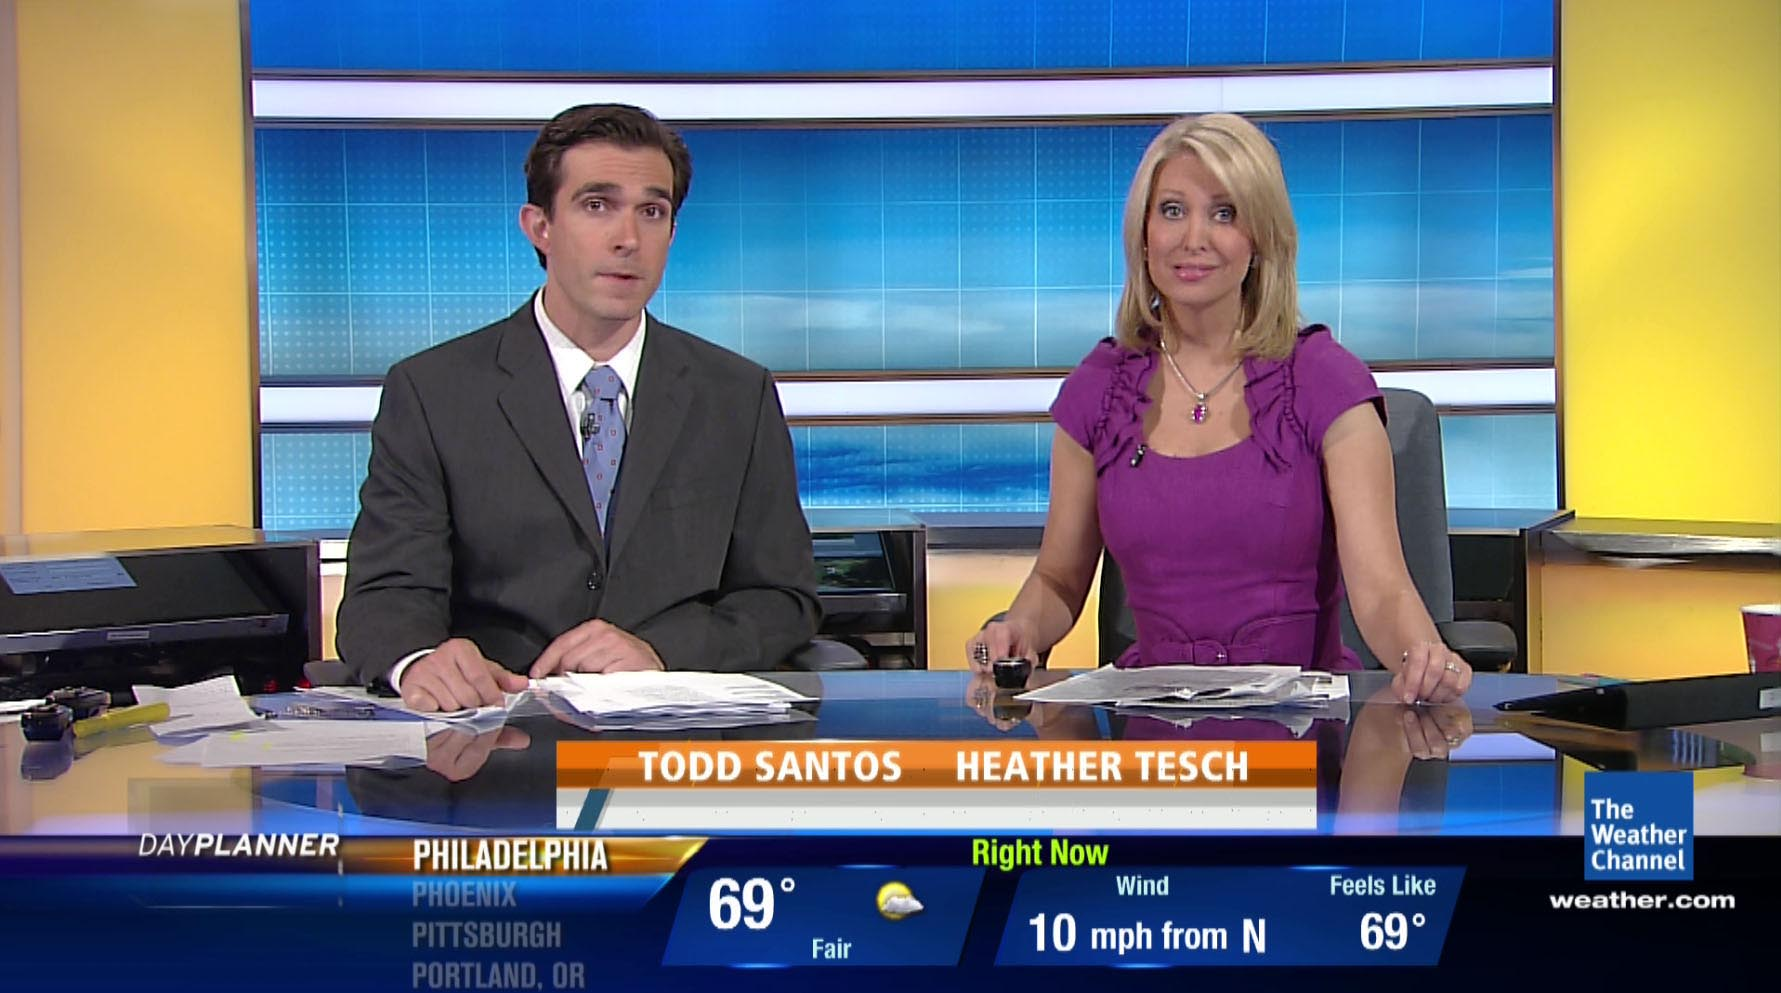 New News Channel : New lower thirds for the weather channel… inside cable news